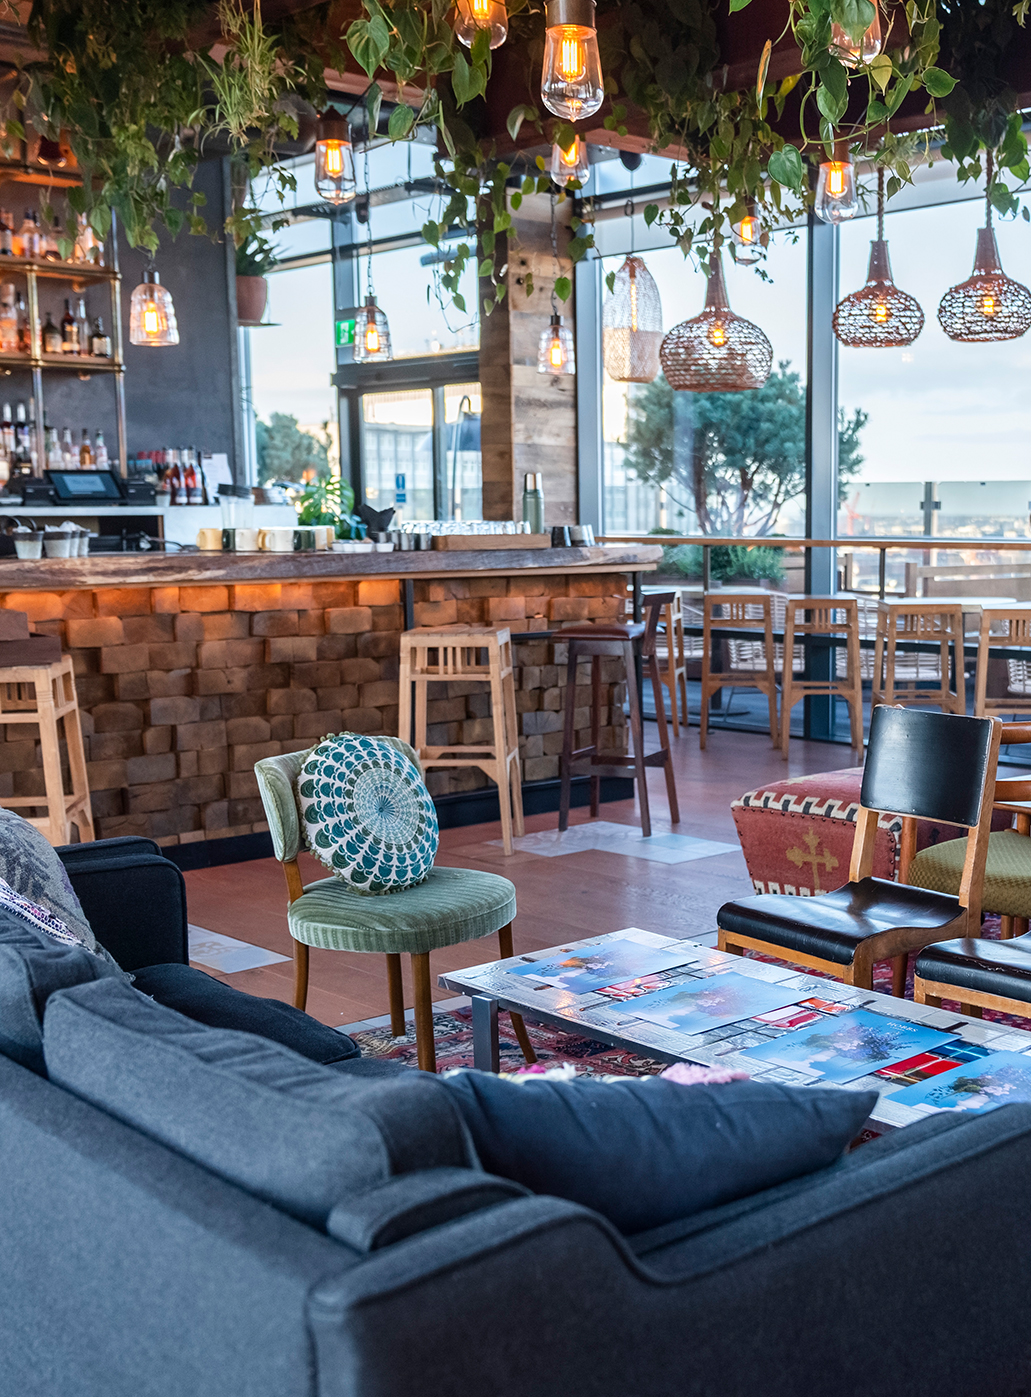 The bohemian inspired interior of rooftop London restaurant, The Nest.